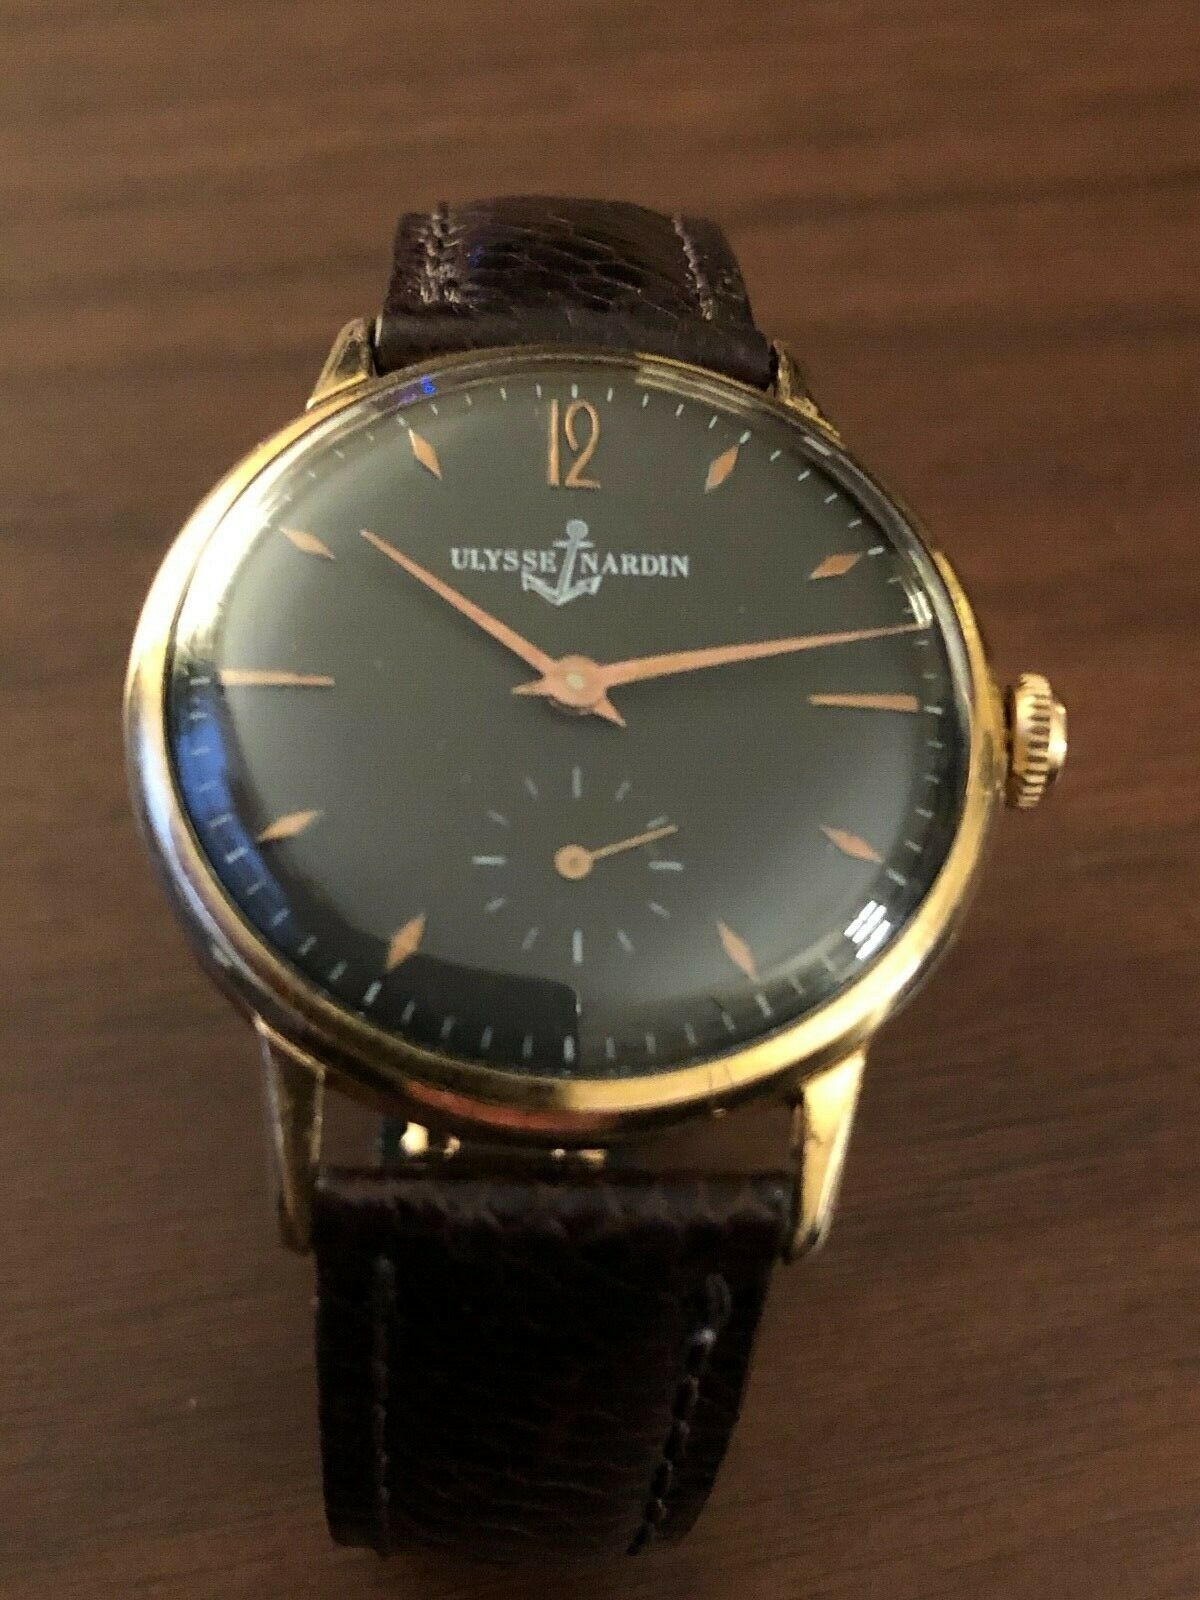 Ulysse Nardin Vintage 1950's Winding Watch